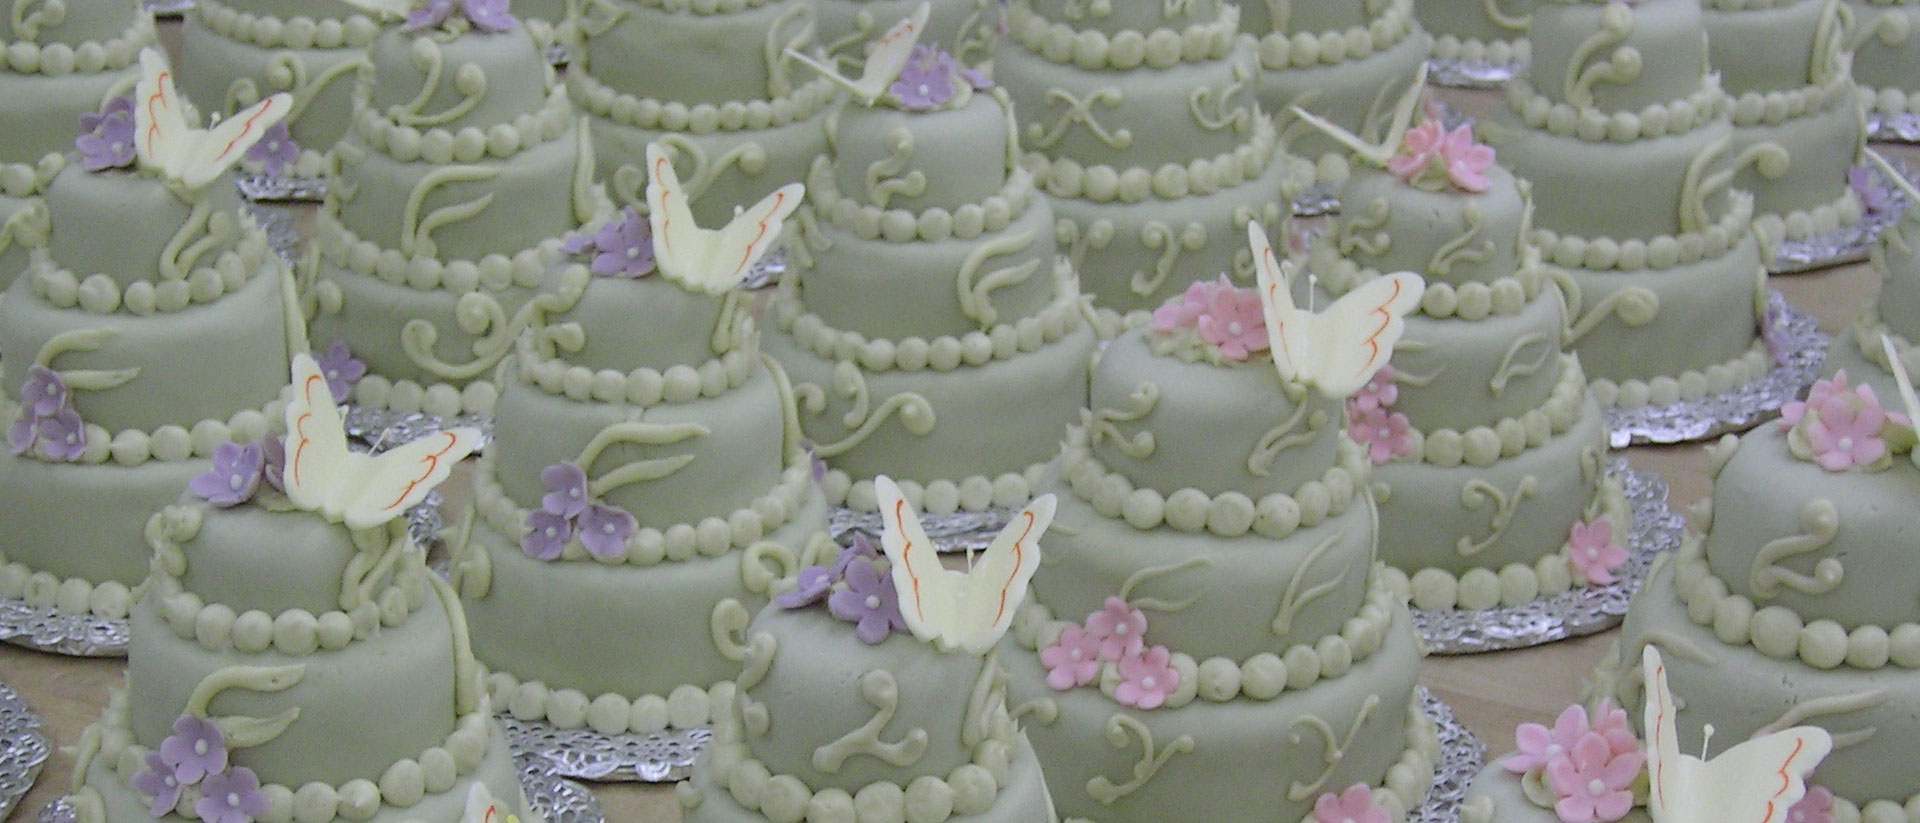 swiss-pastry-shop-bahamas-guest-wedding-cakes-01